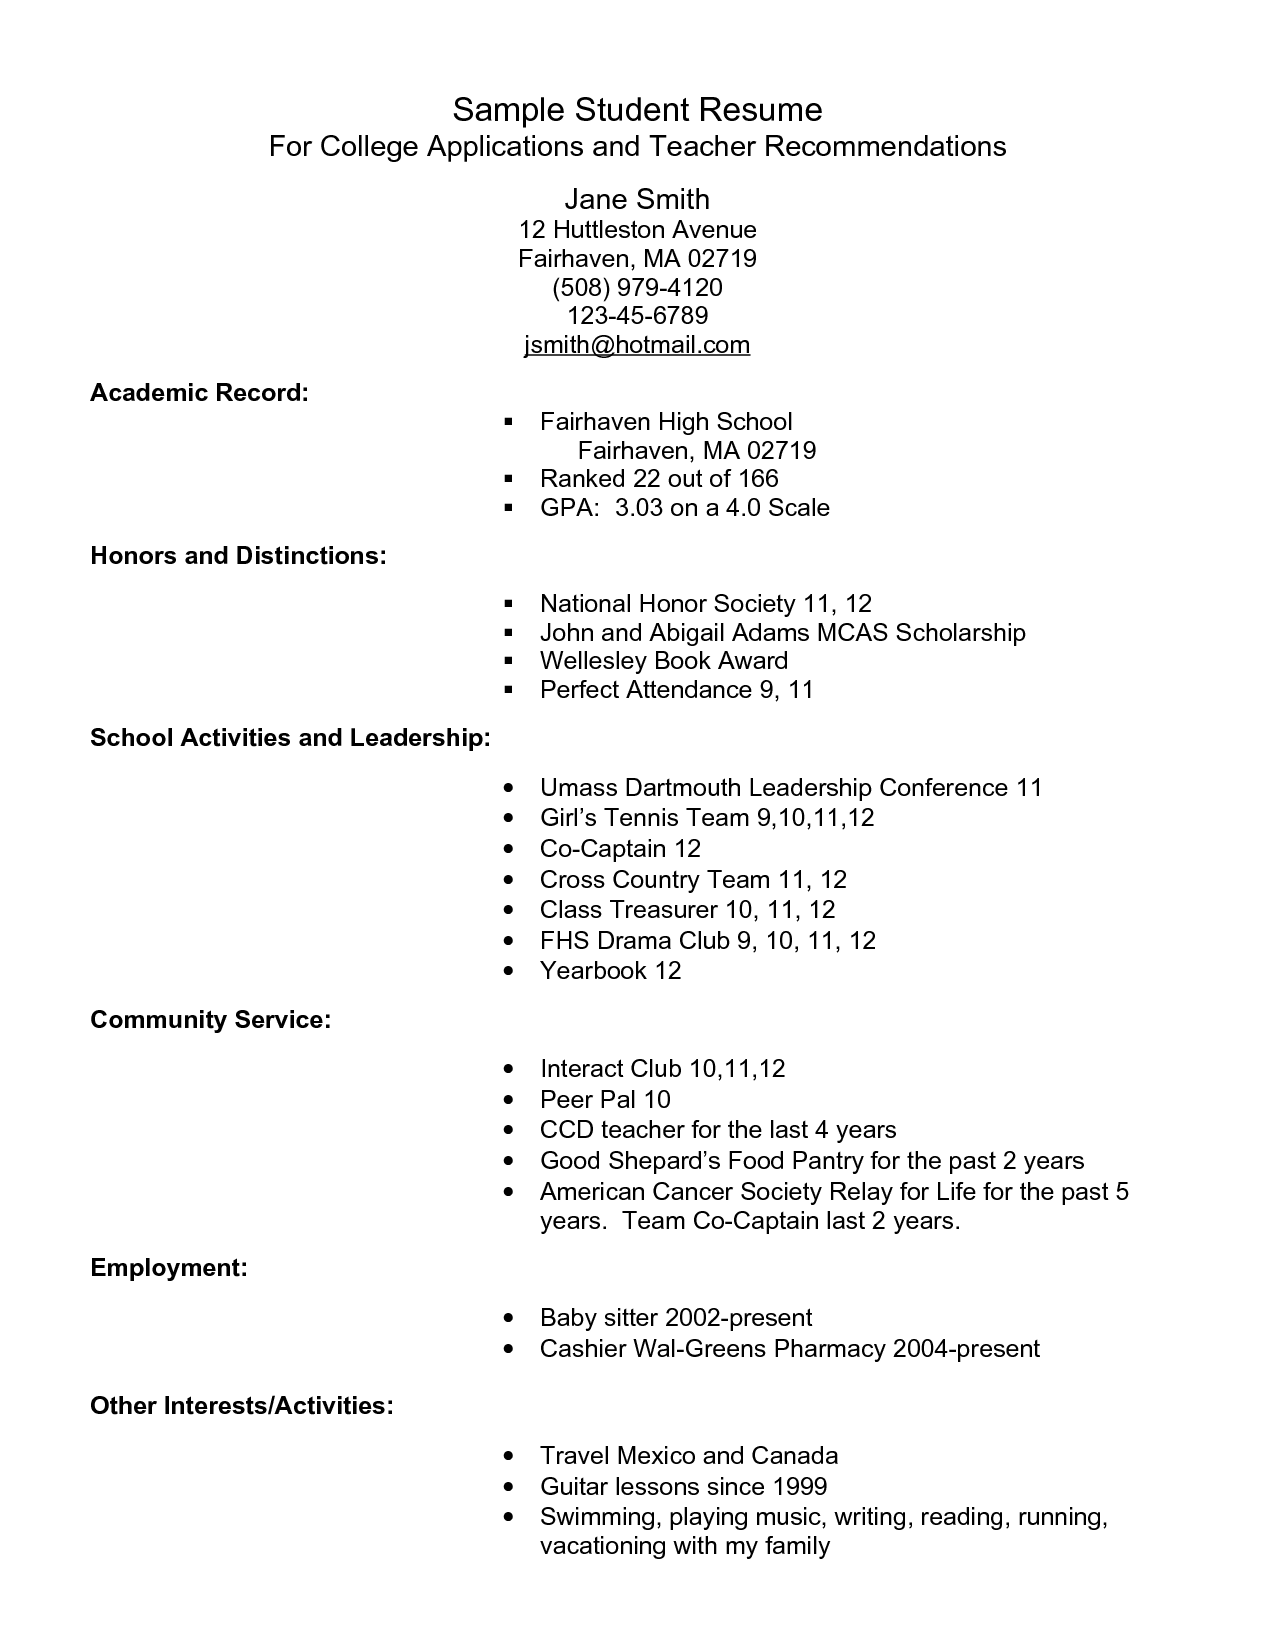 Resume Examples For College Students Example Resume For High School Students For College Applications